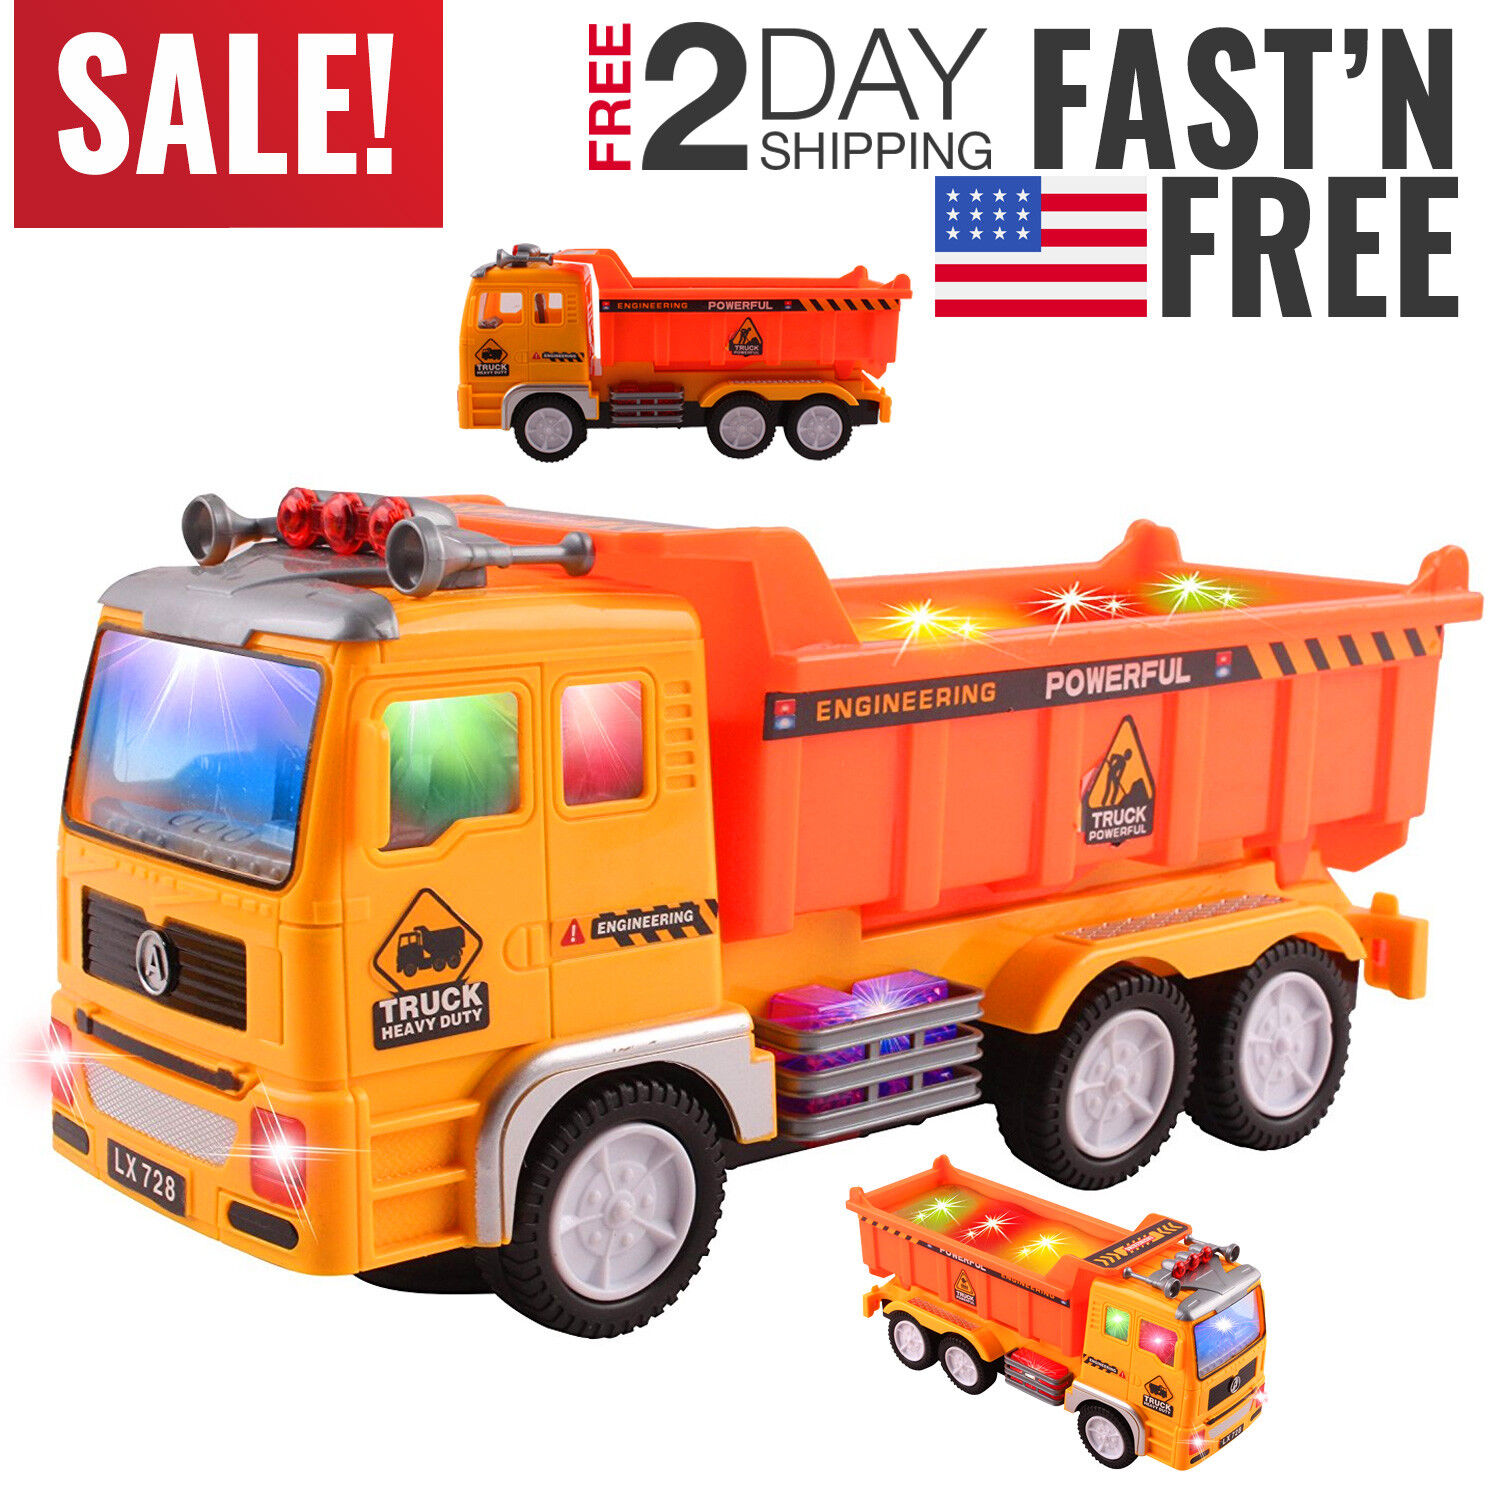 Toys for Boys Truck Kids Toddler Construction Car 3 4 5 6 7 8 Year